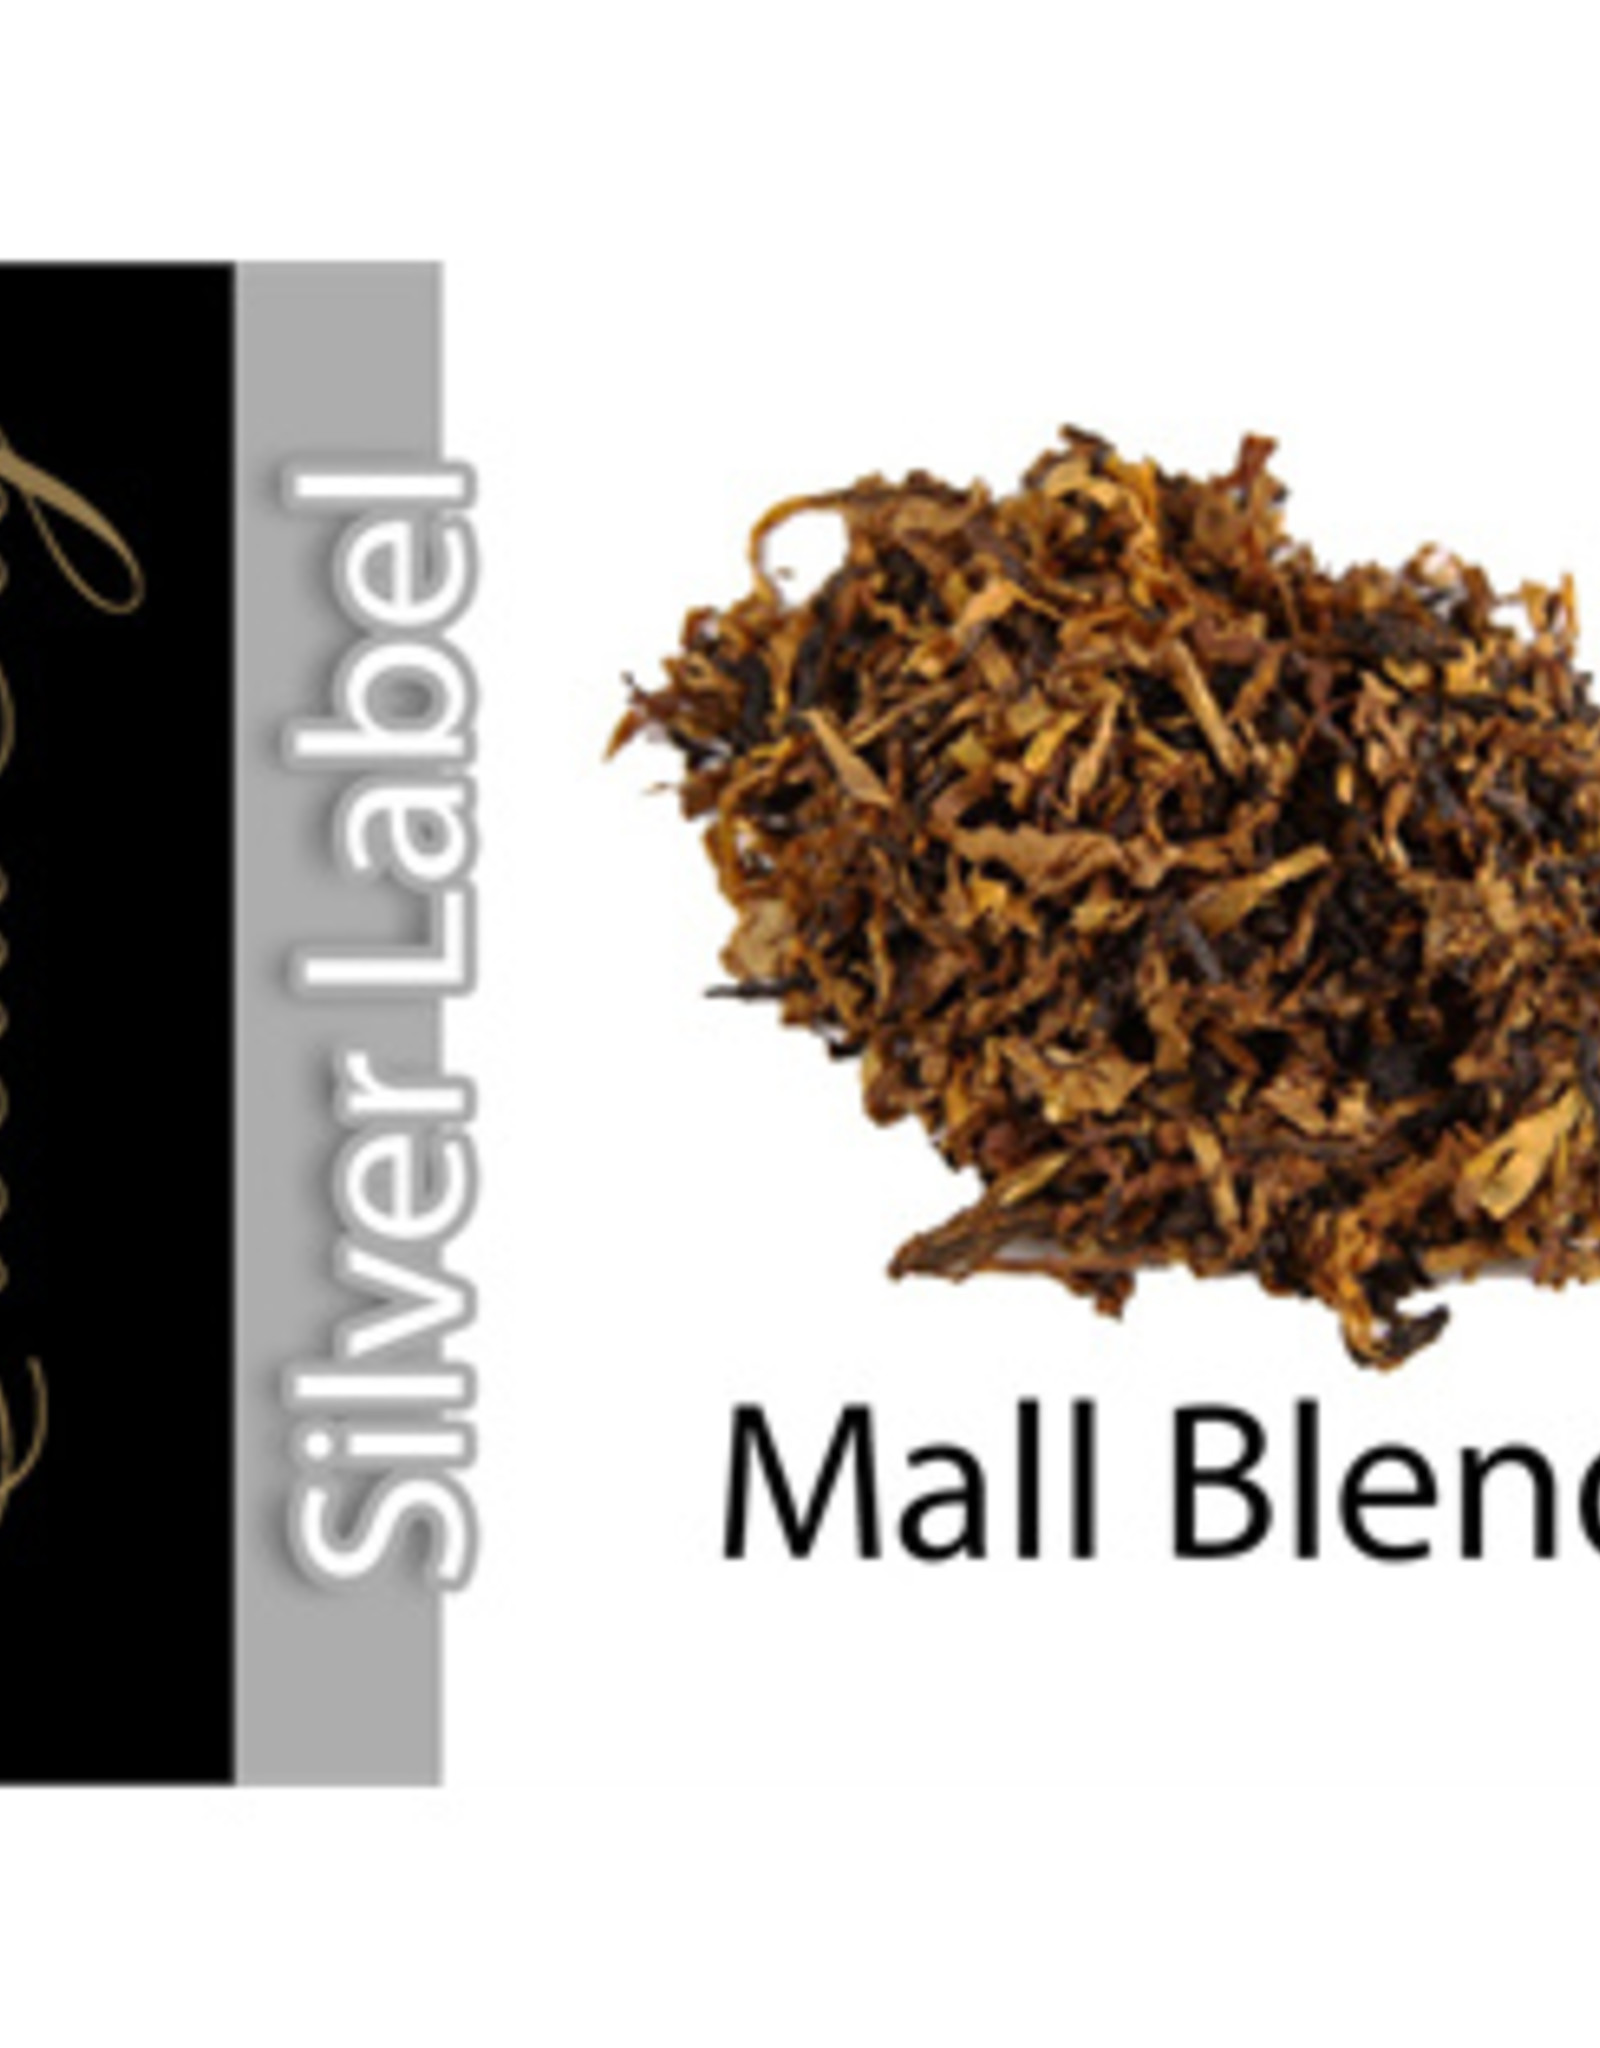 Exclucig Exclucig Silver Label E-liquid Mall Blend 12 mg Nicotine